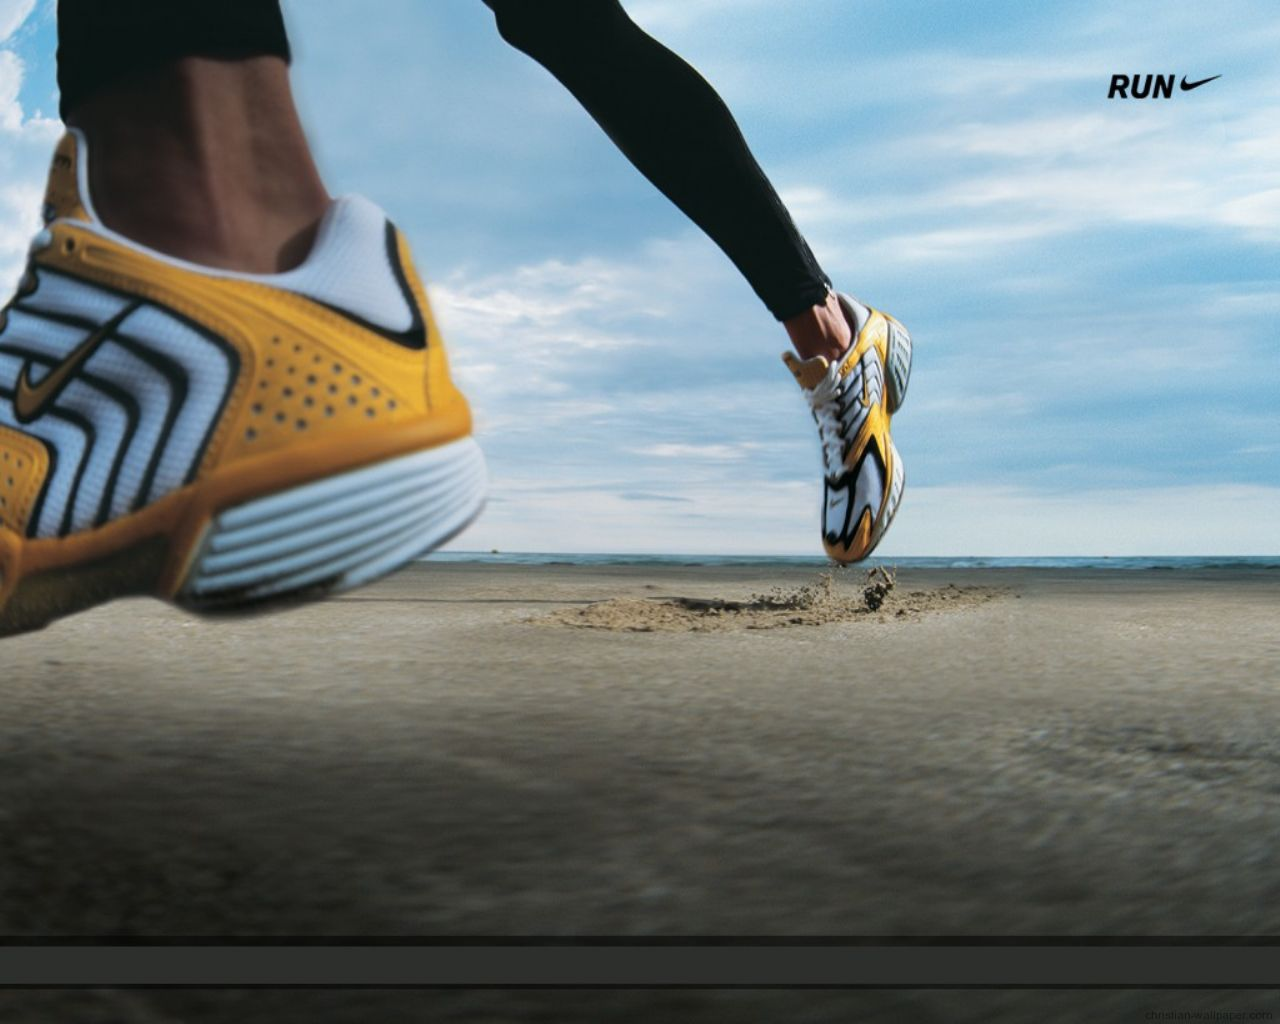 Running HD Wallpapers  Backgrounds  Wallpaper  1280x1024